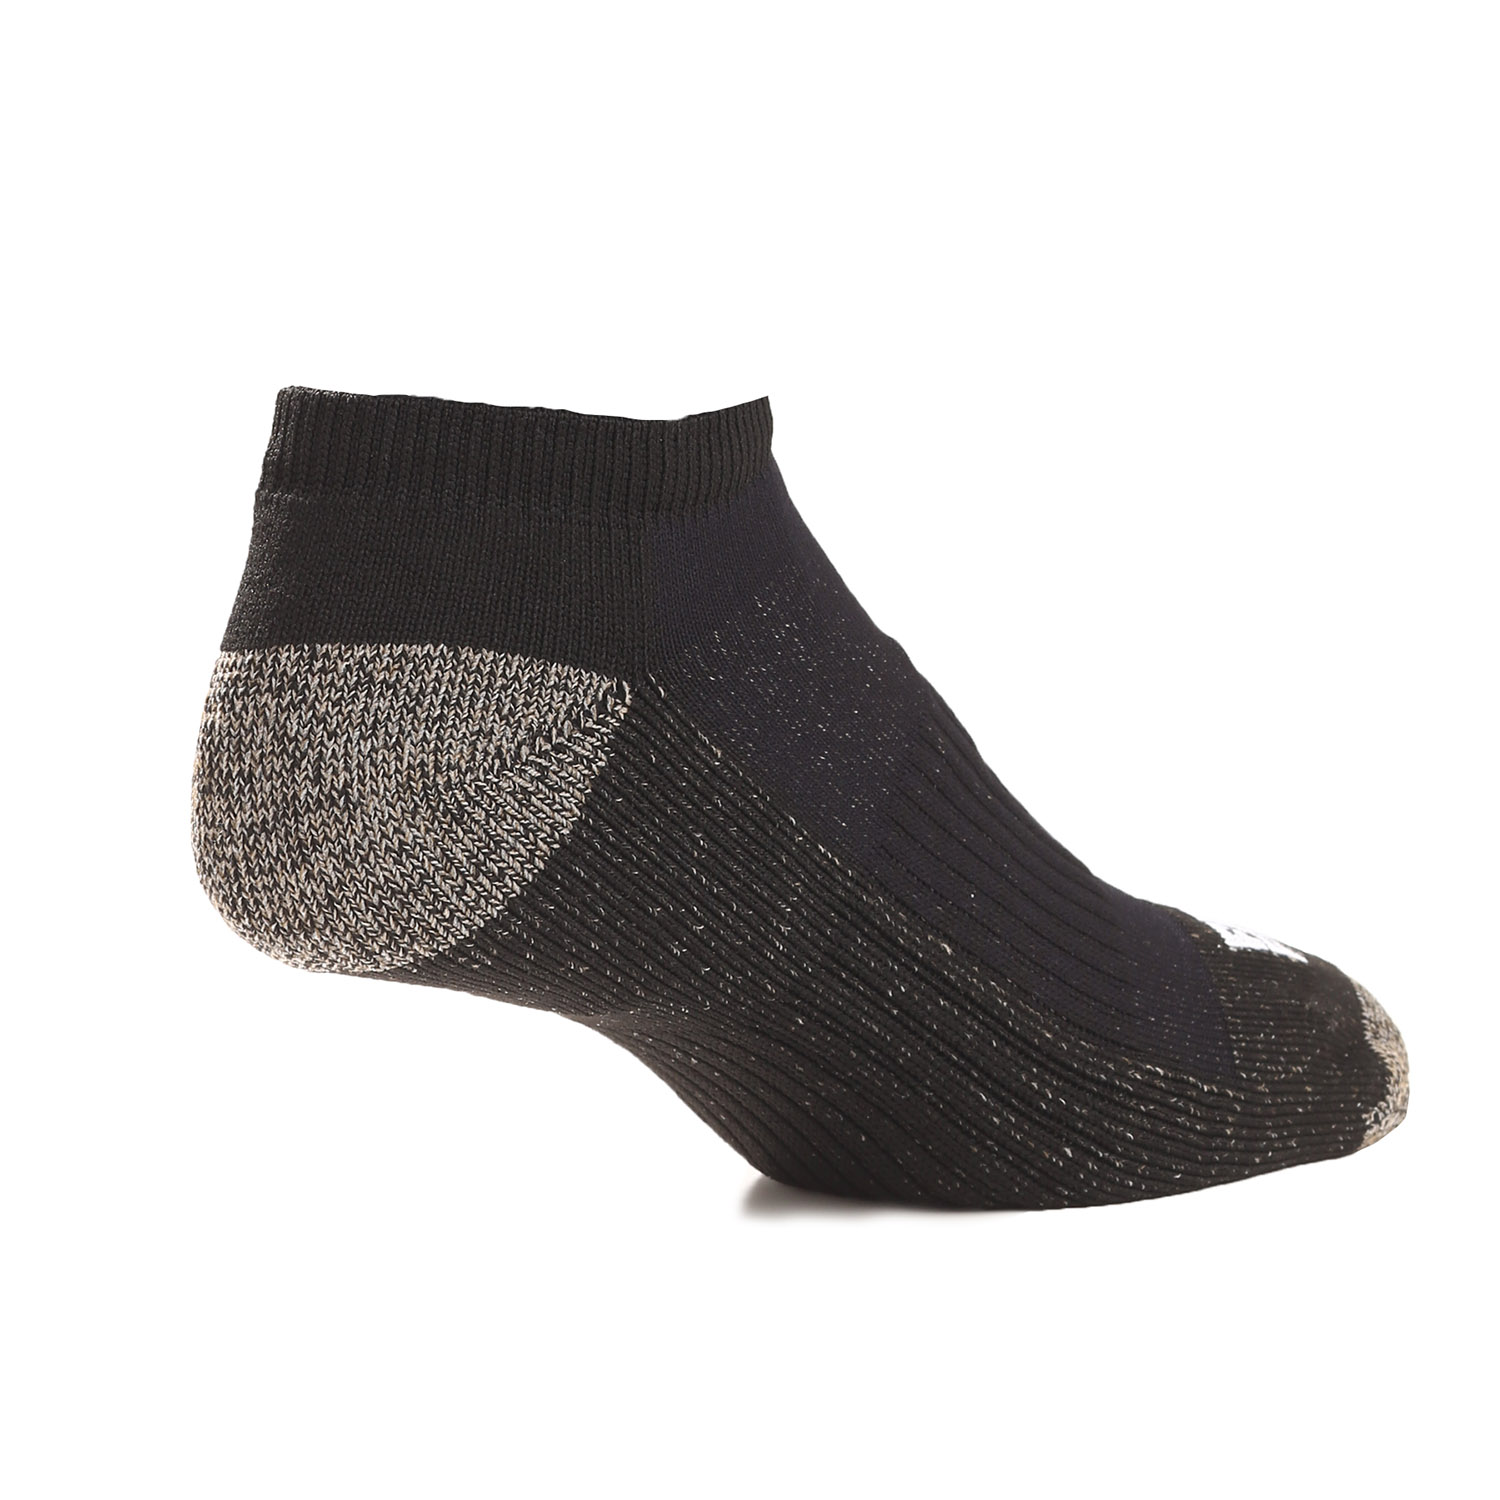 Pro Feet Performance Silver Tech Low Cut Socks